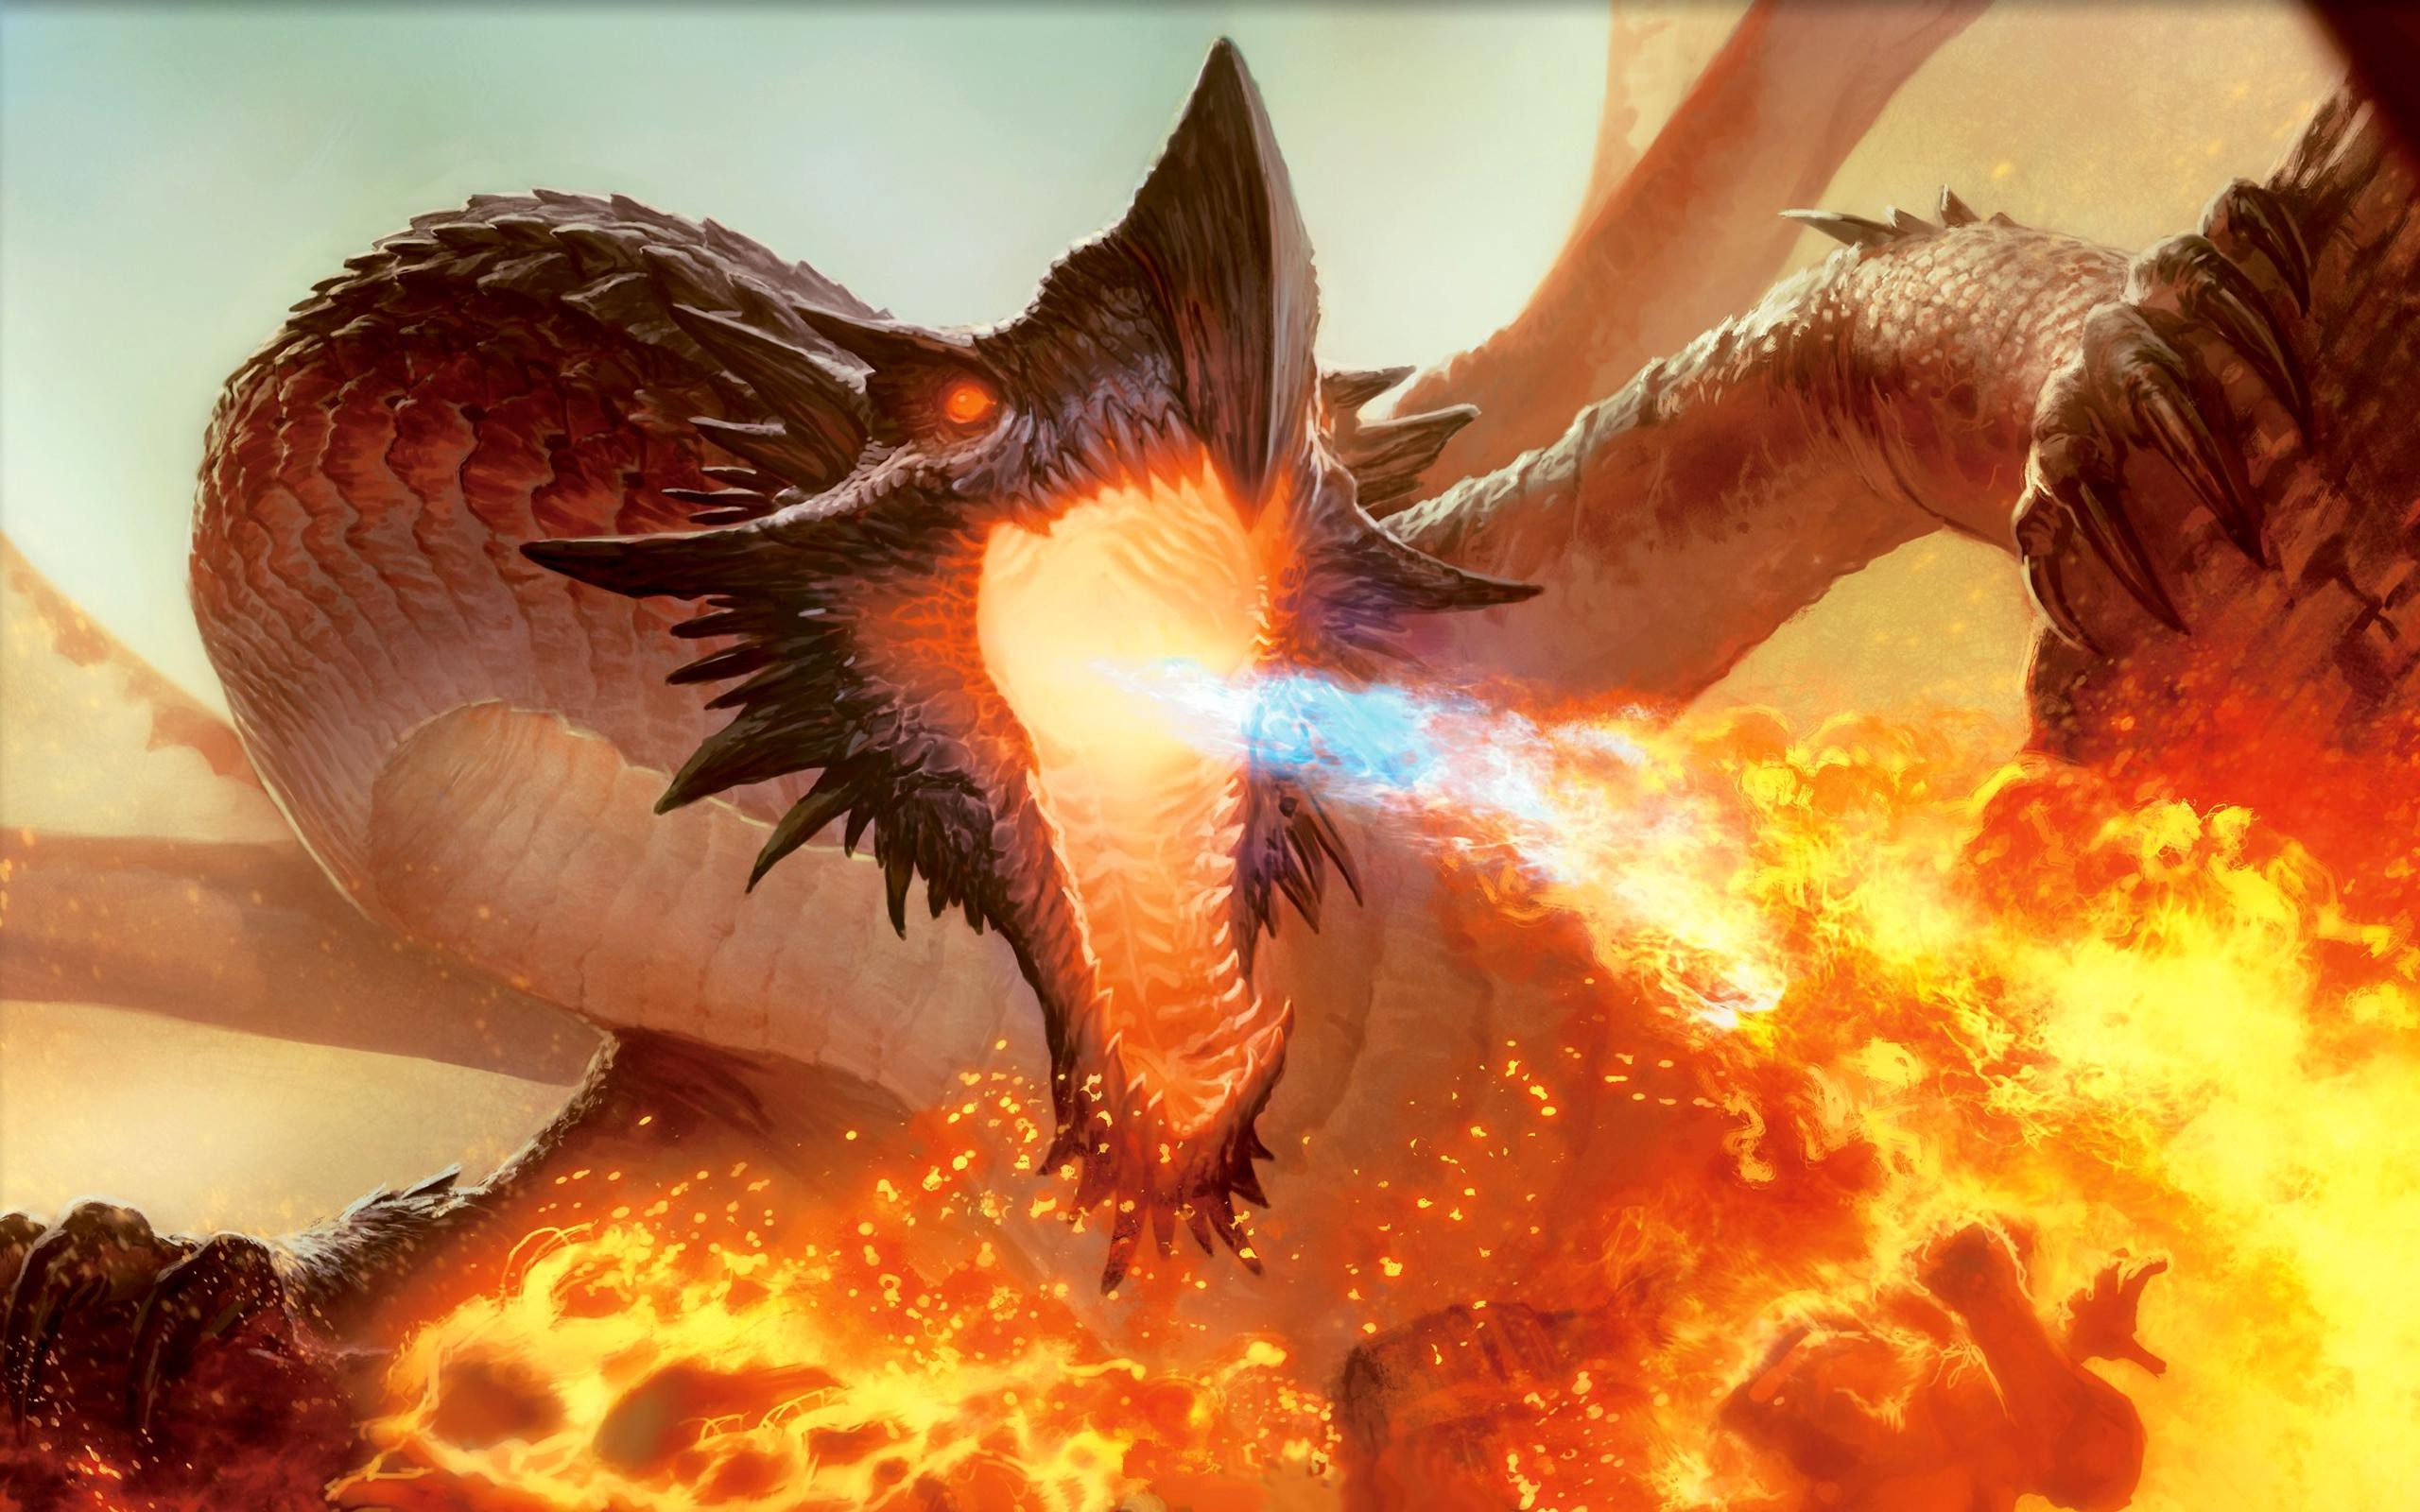 Related Wallpapers from Japanese Wallpaper. Fire breathing Dragon